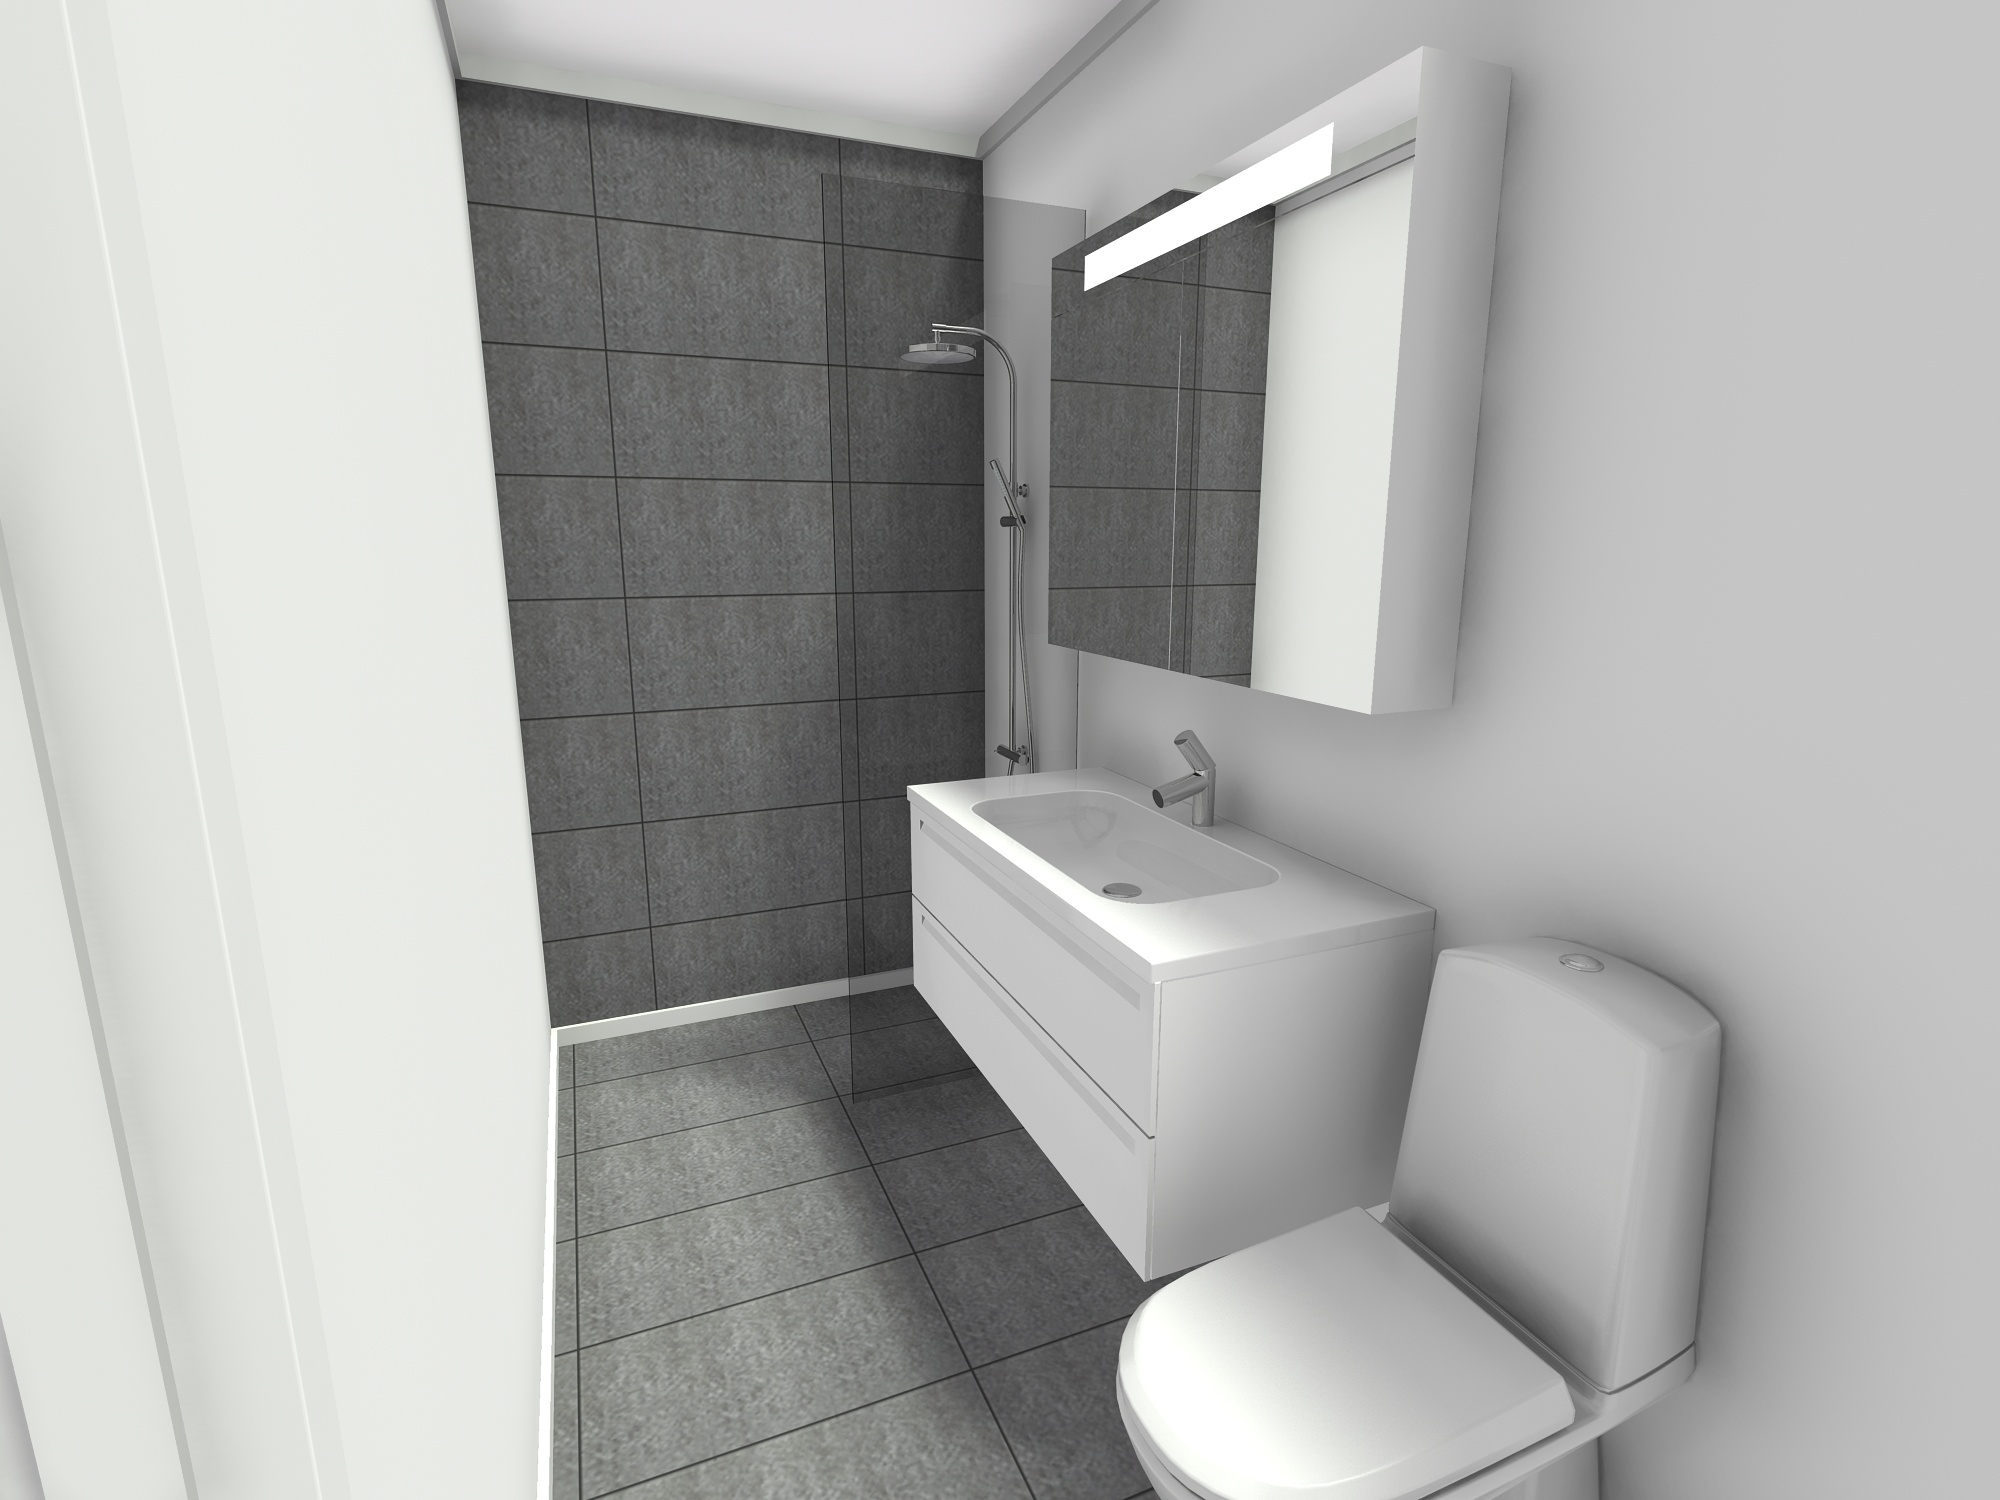 New Bathroom in Christianshavn 3 D